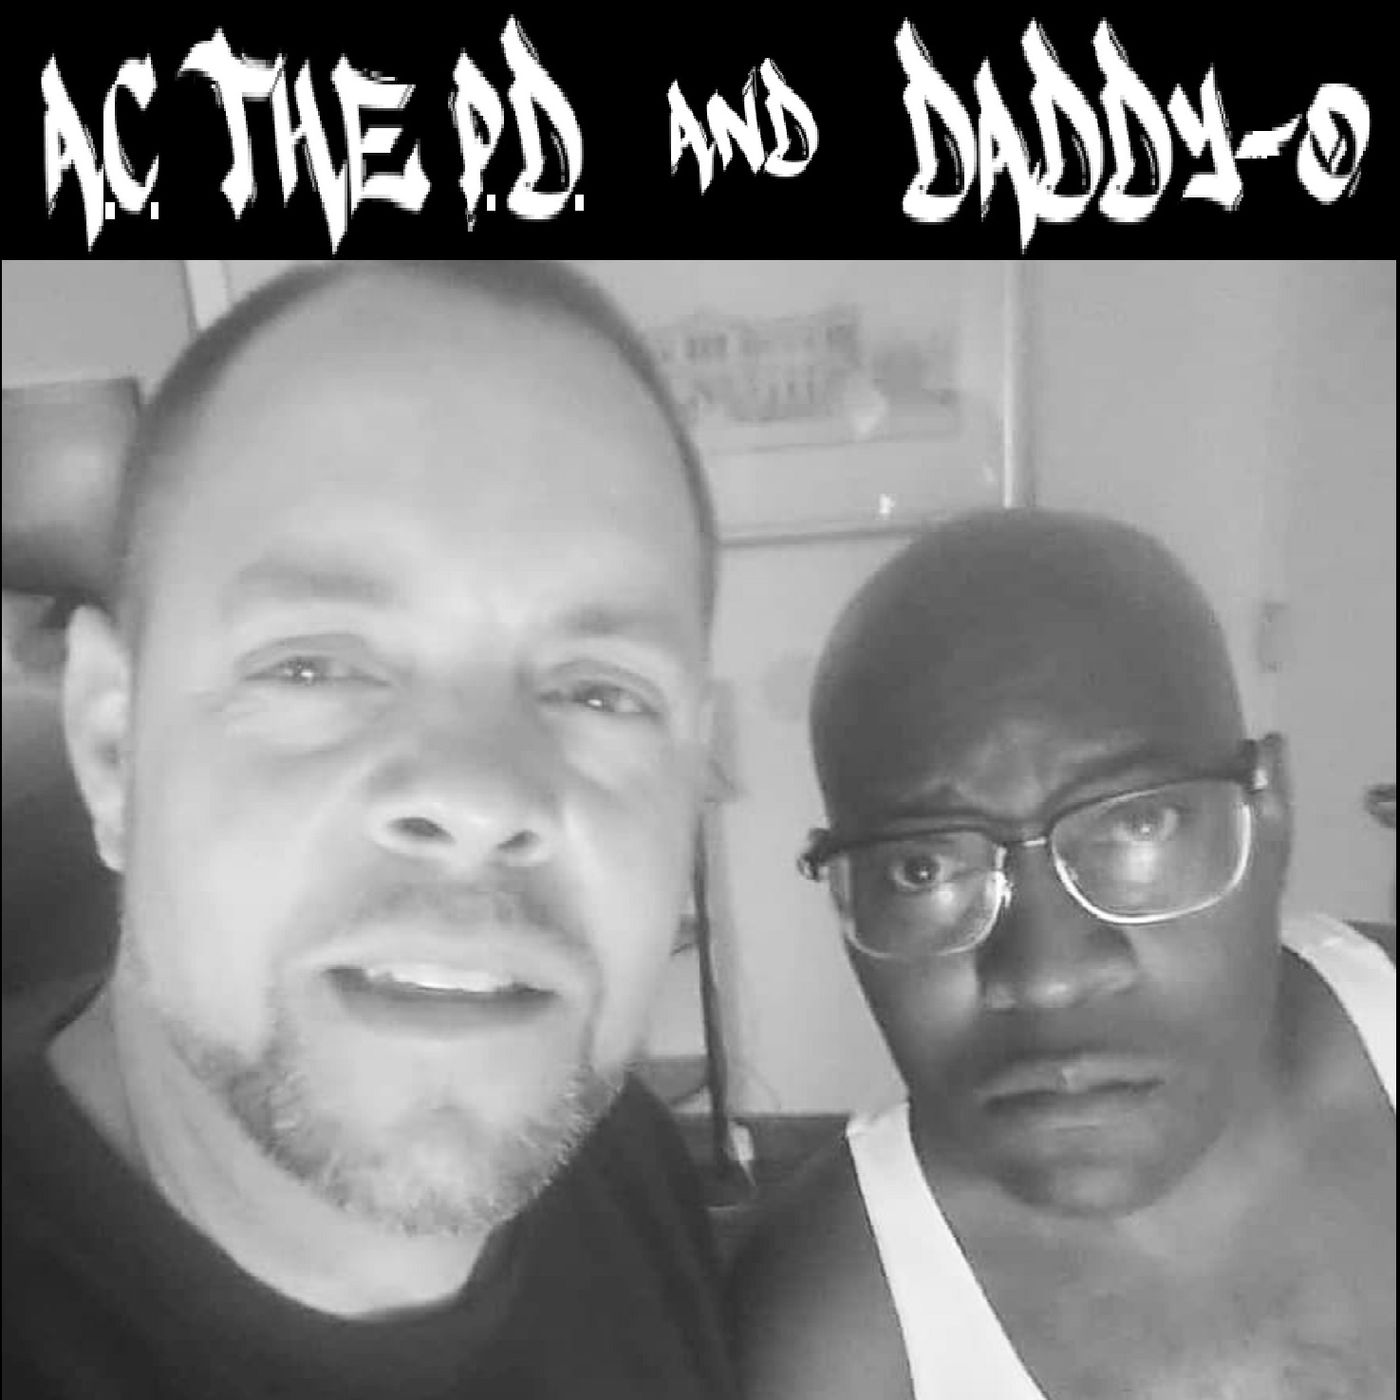 Daddy-O and A.C. The P.D. - Gangster Boogie RMX